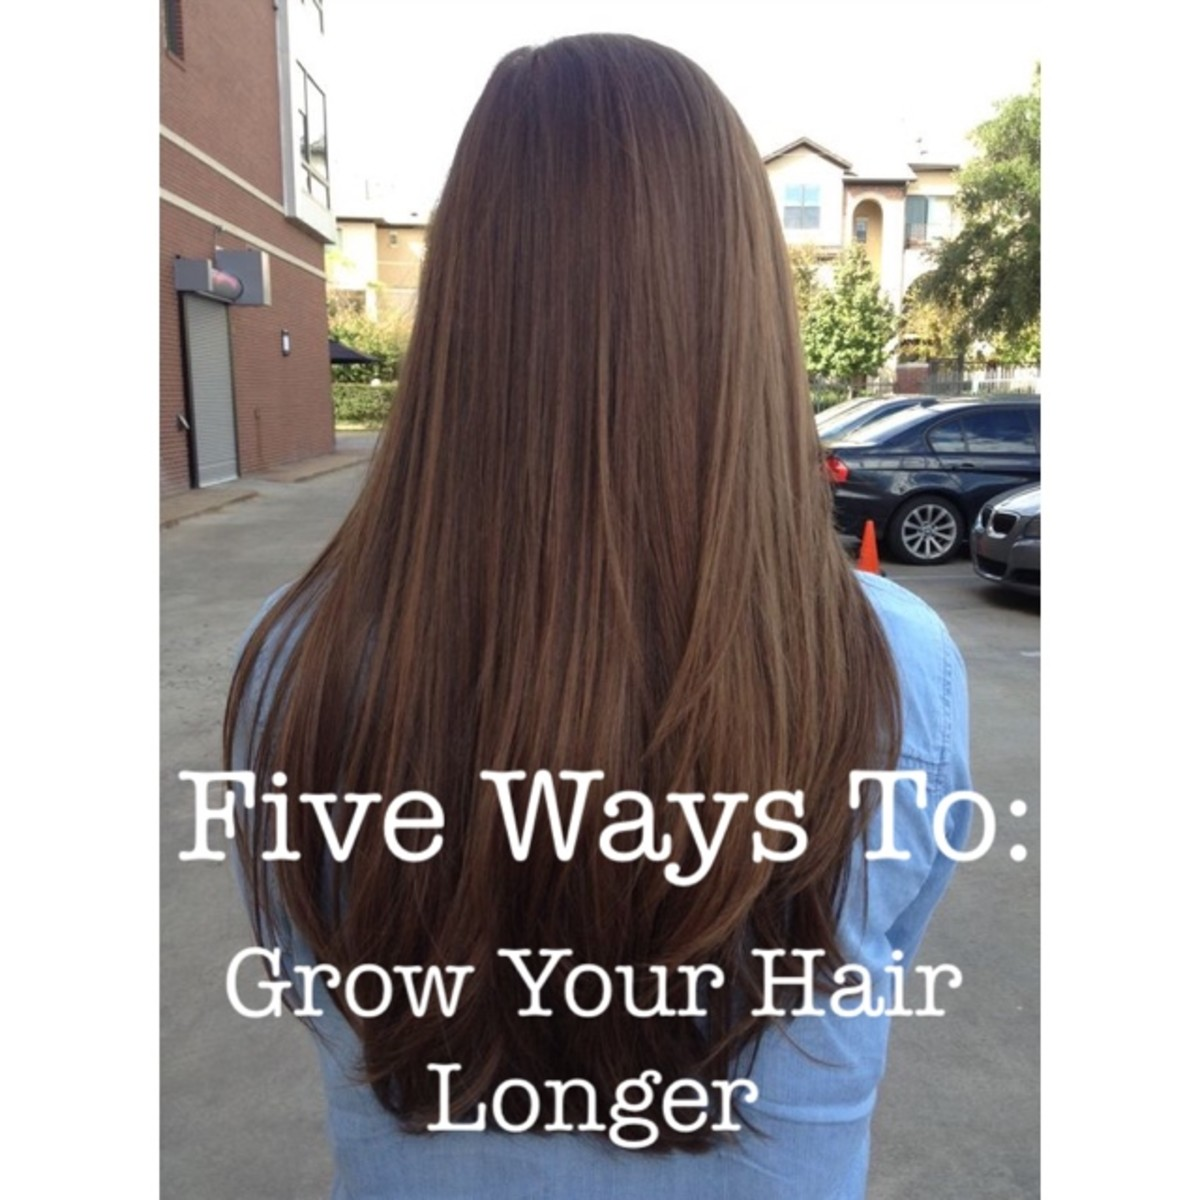 5 Tips to Grow Your Hair Longer